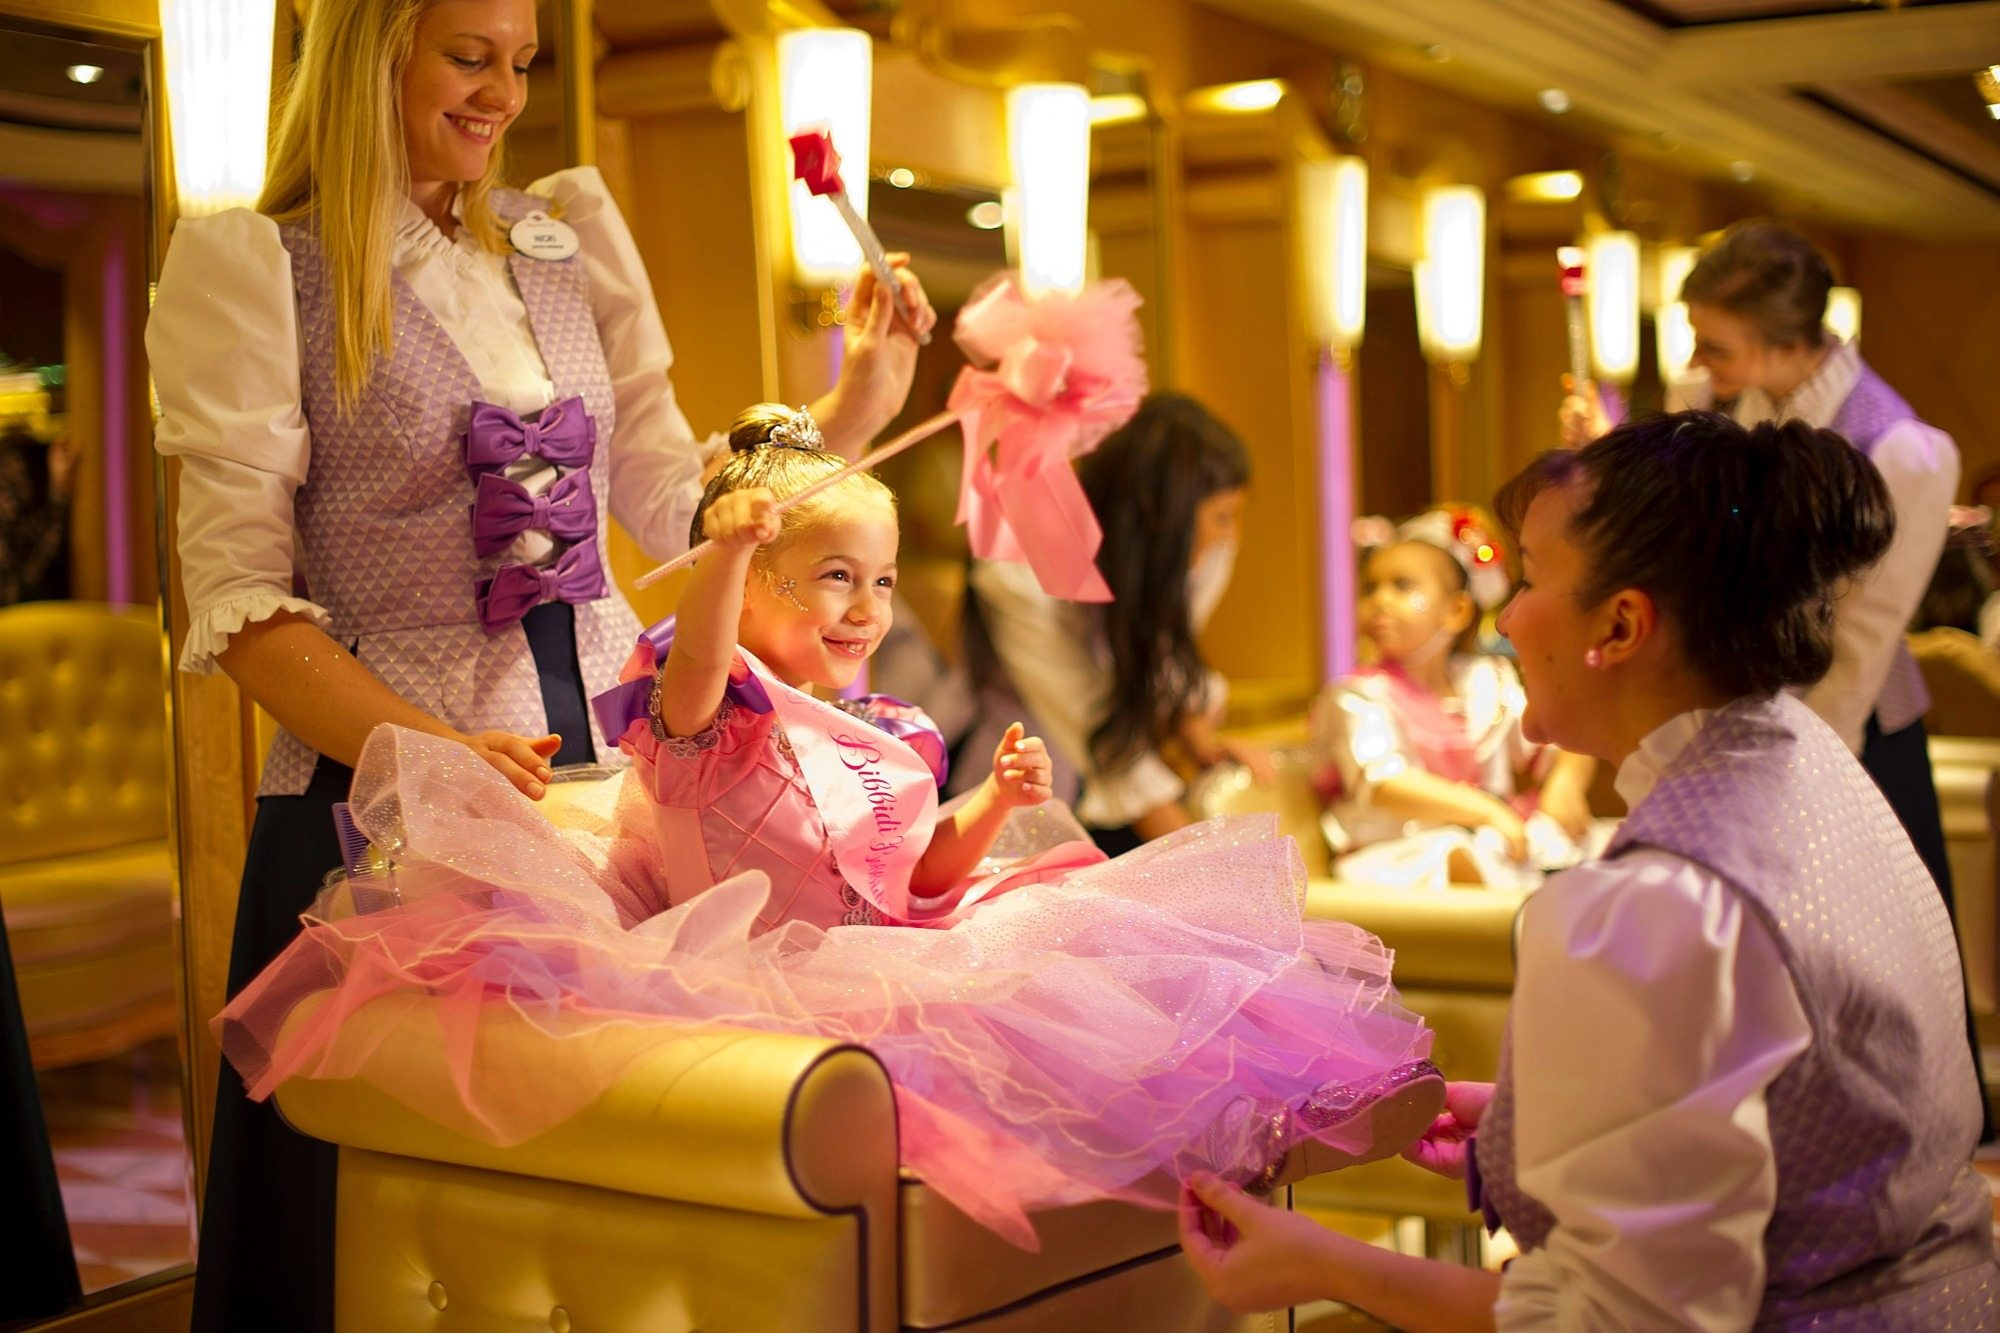 The Bibbidi Bobbidi Boutique on the Disney Wonder ship, which sails from San Diego.